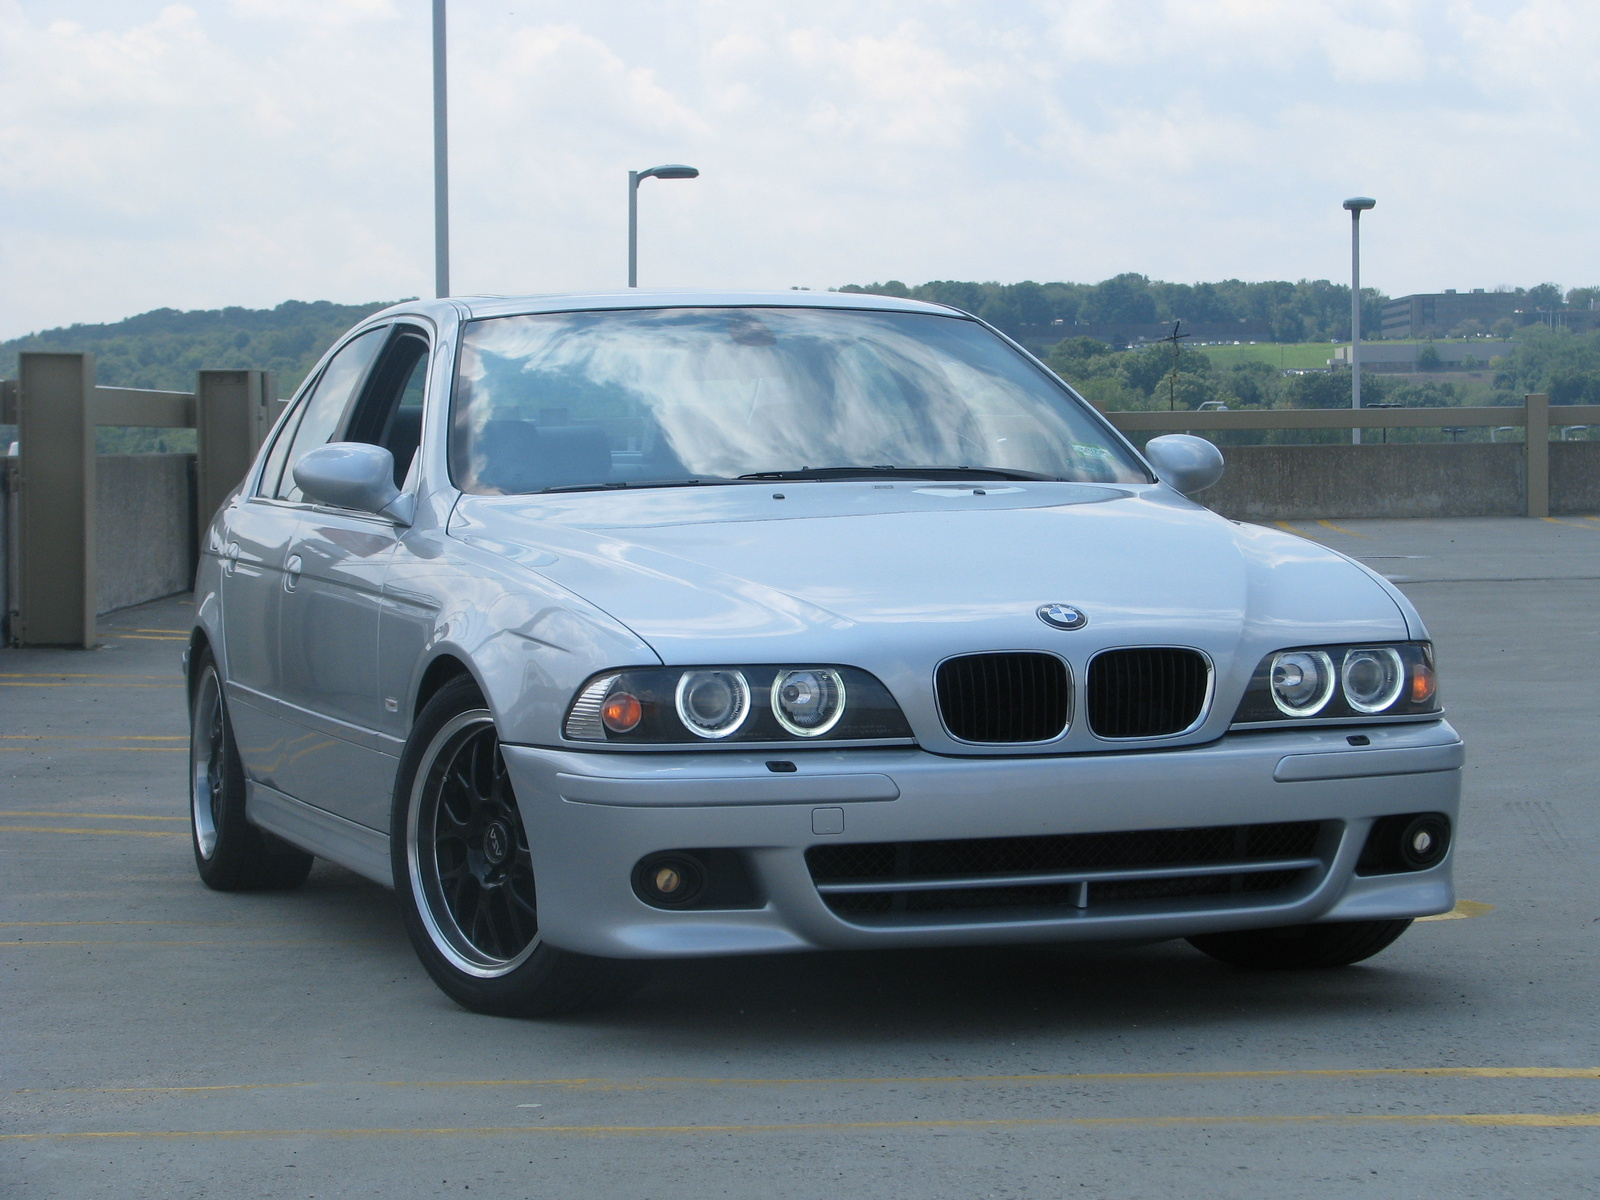 Bmw M5 1980 Review Amazing Pictures And Images Look At The Car